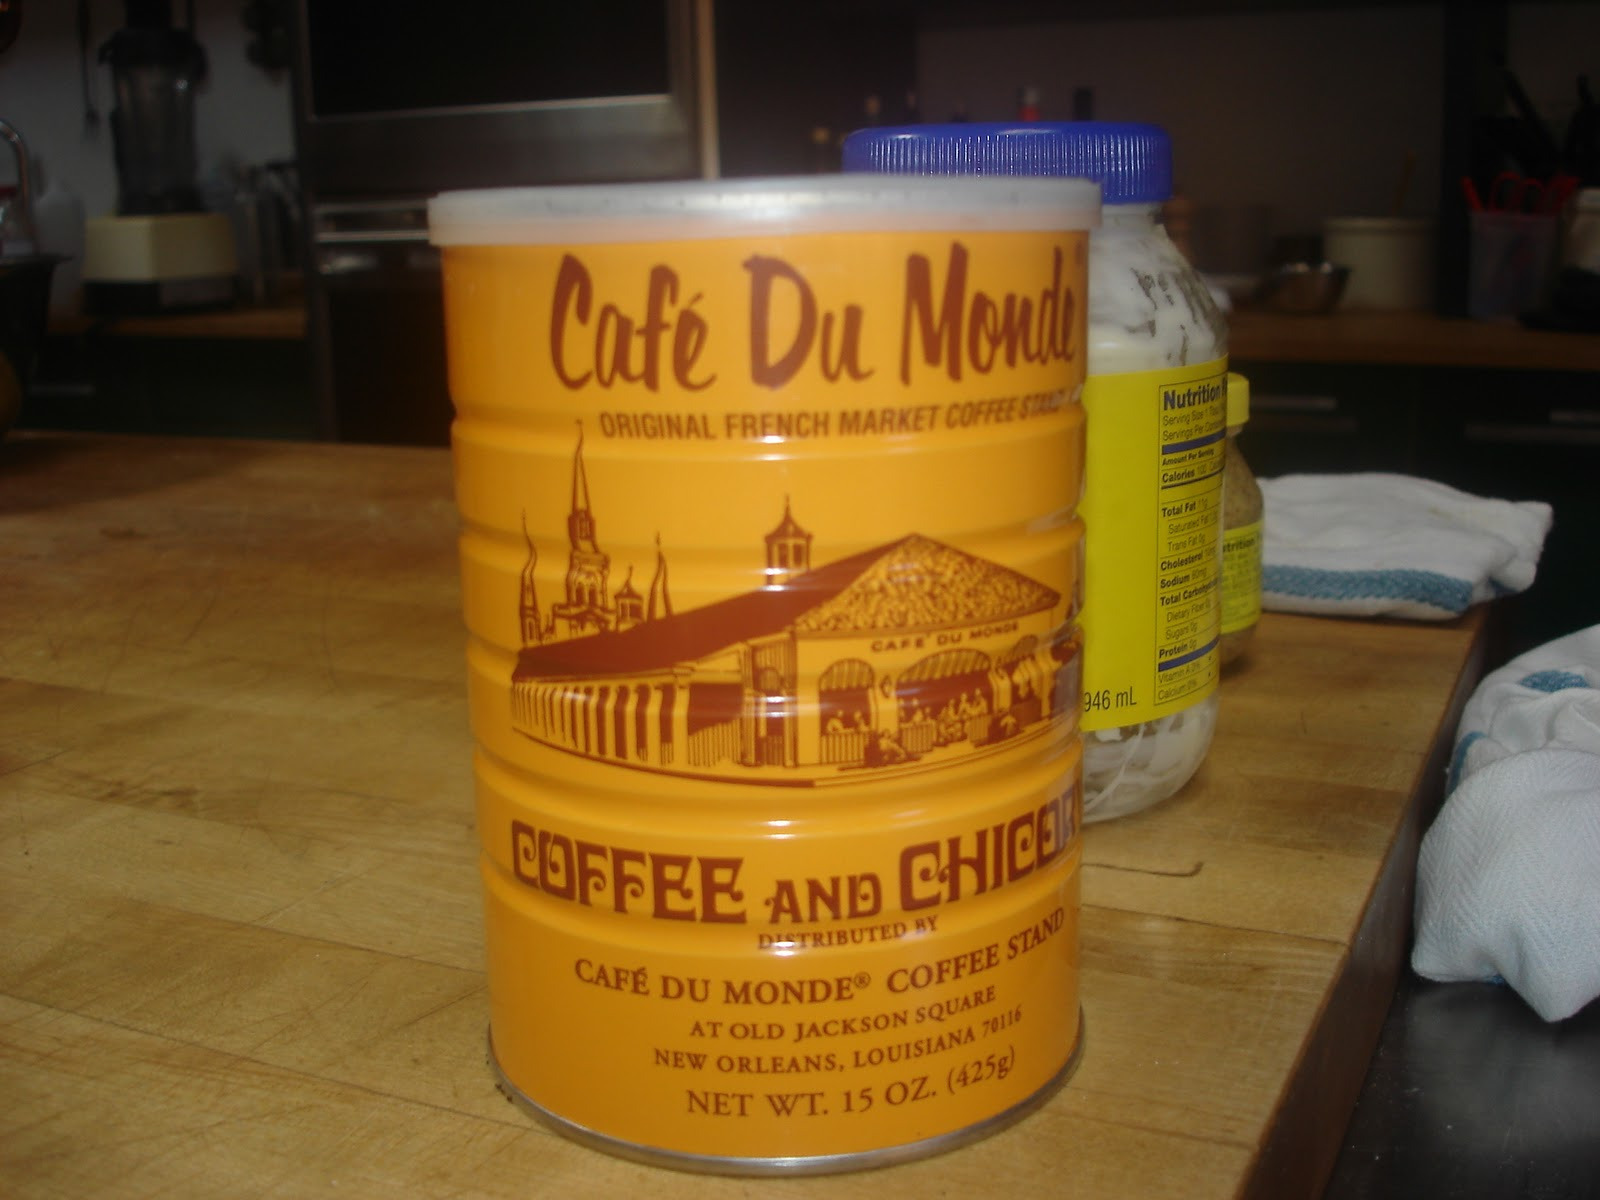 ... du Monde's chickery coffee, used to make a NOLA style Cafe Au Lait